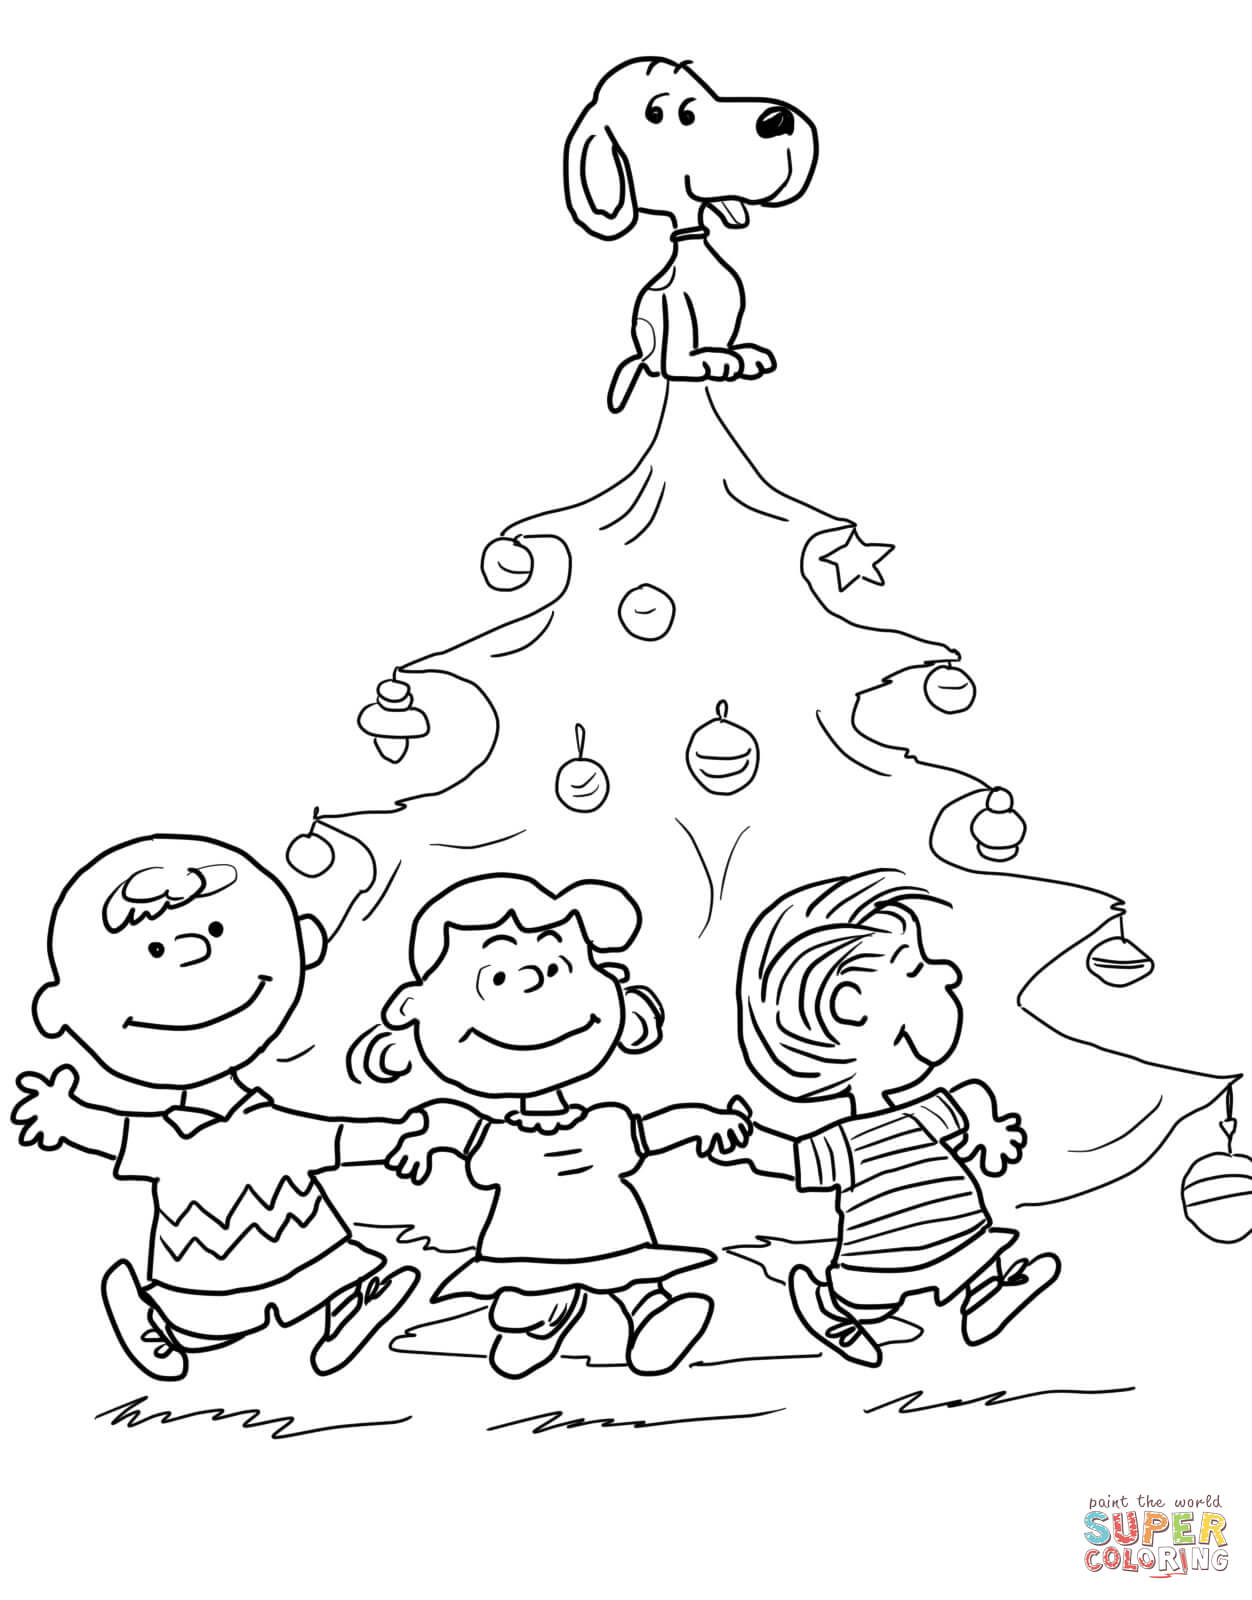 how to draw peanuts movie characters